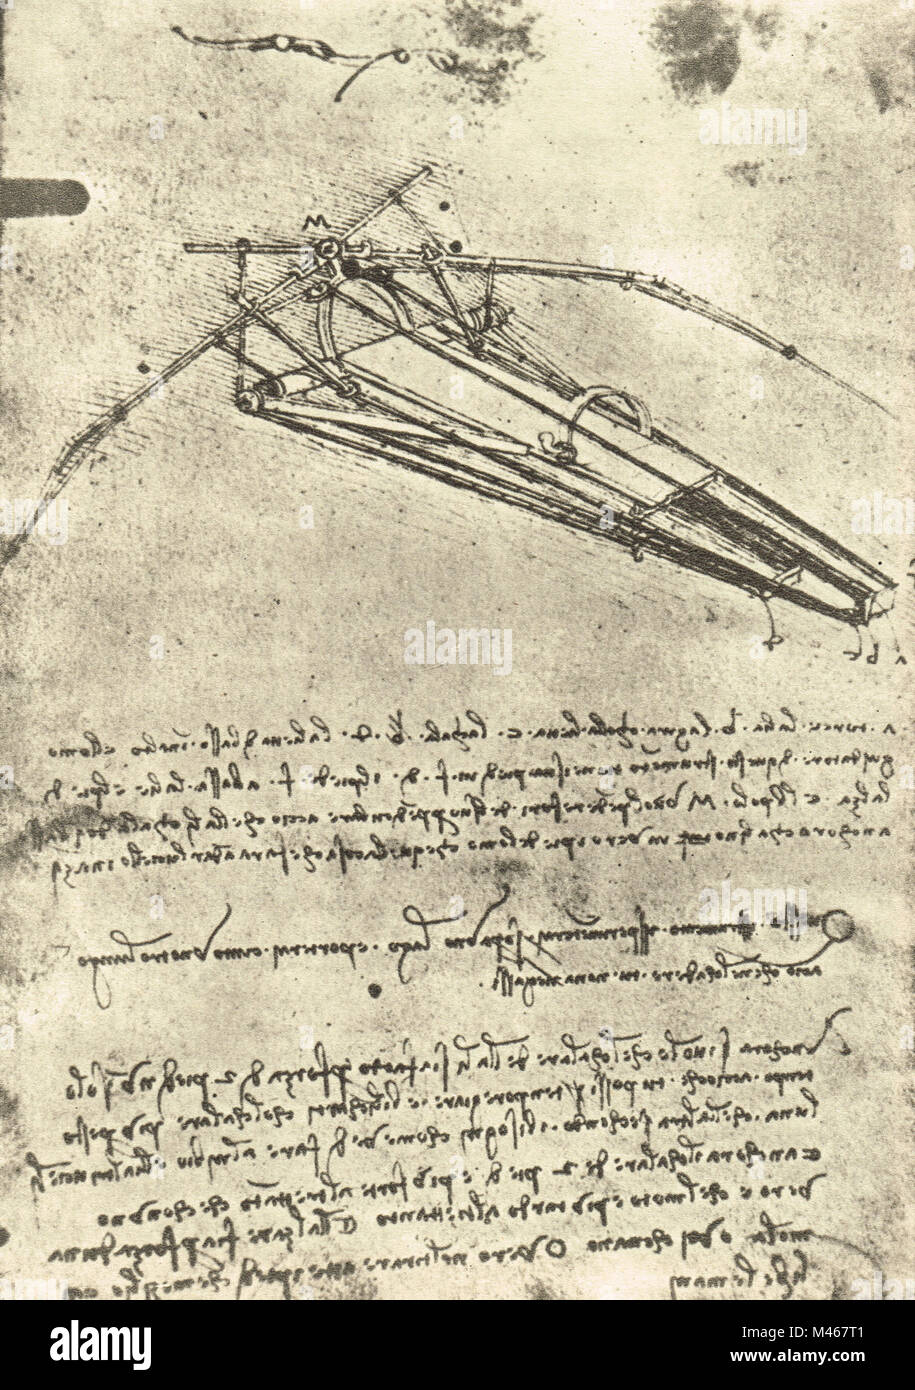 Flying machine drawn by Leonardo Da Vinci, Circa 1488-9 - Stock Image